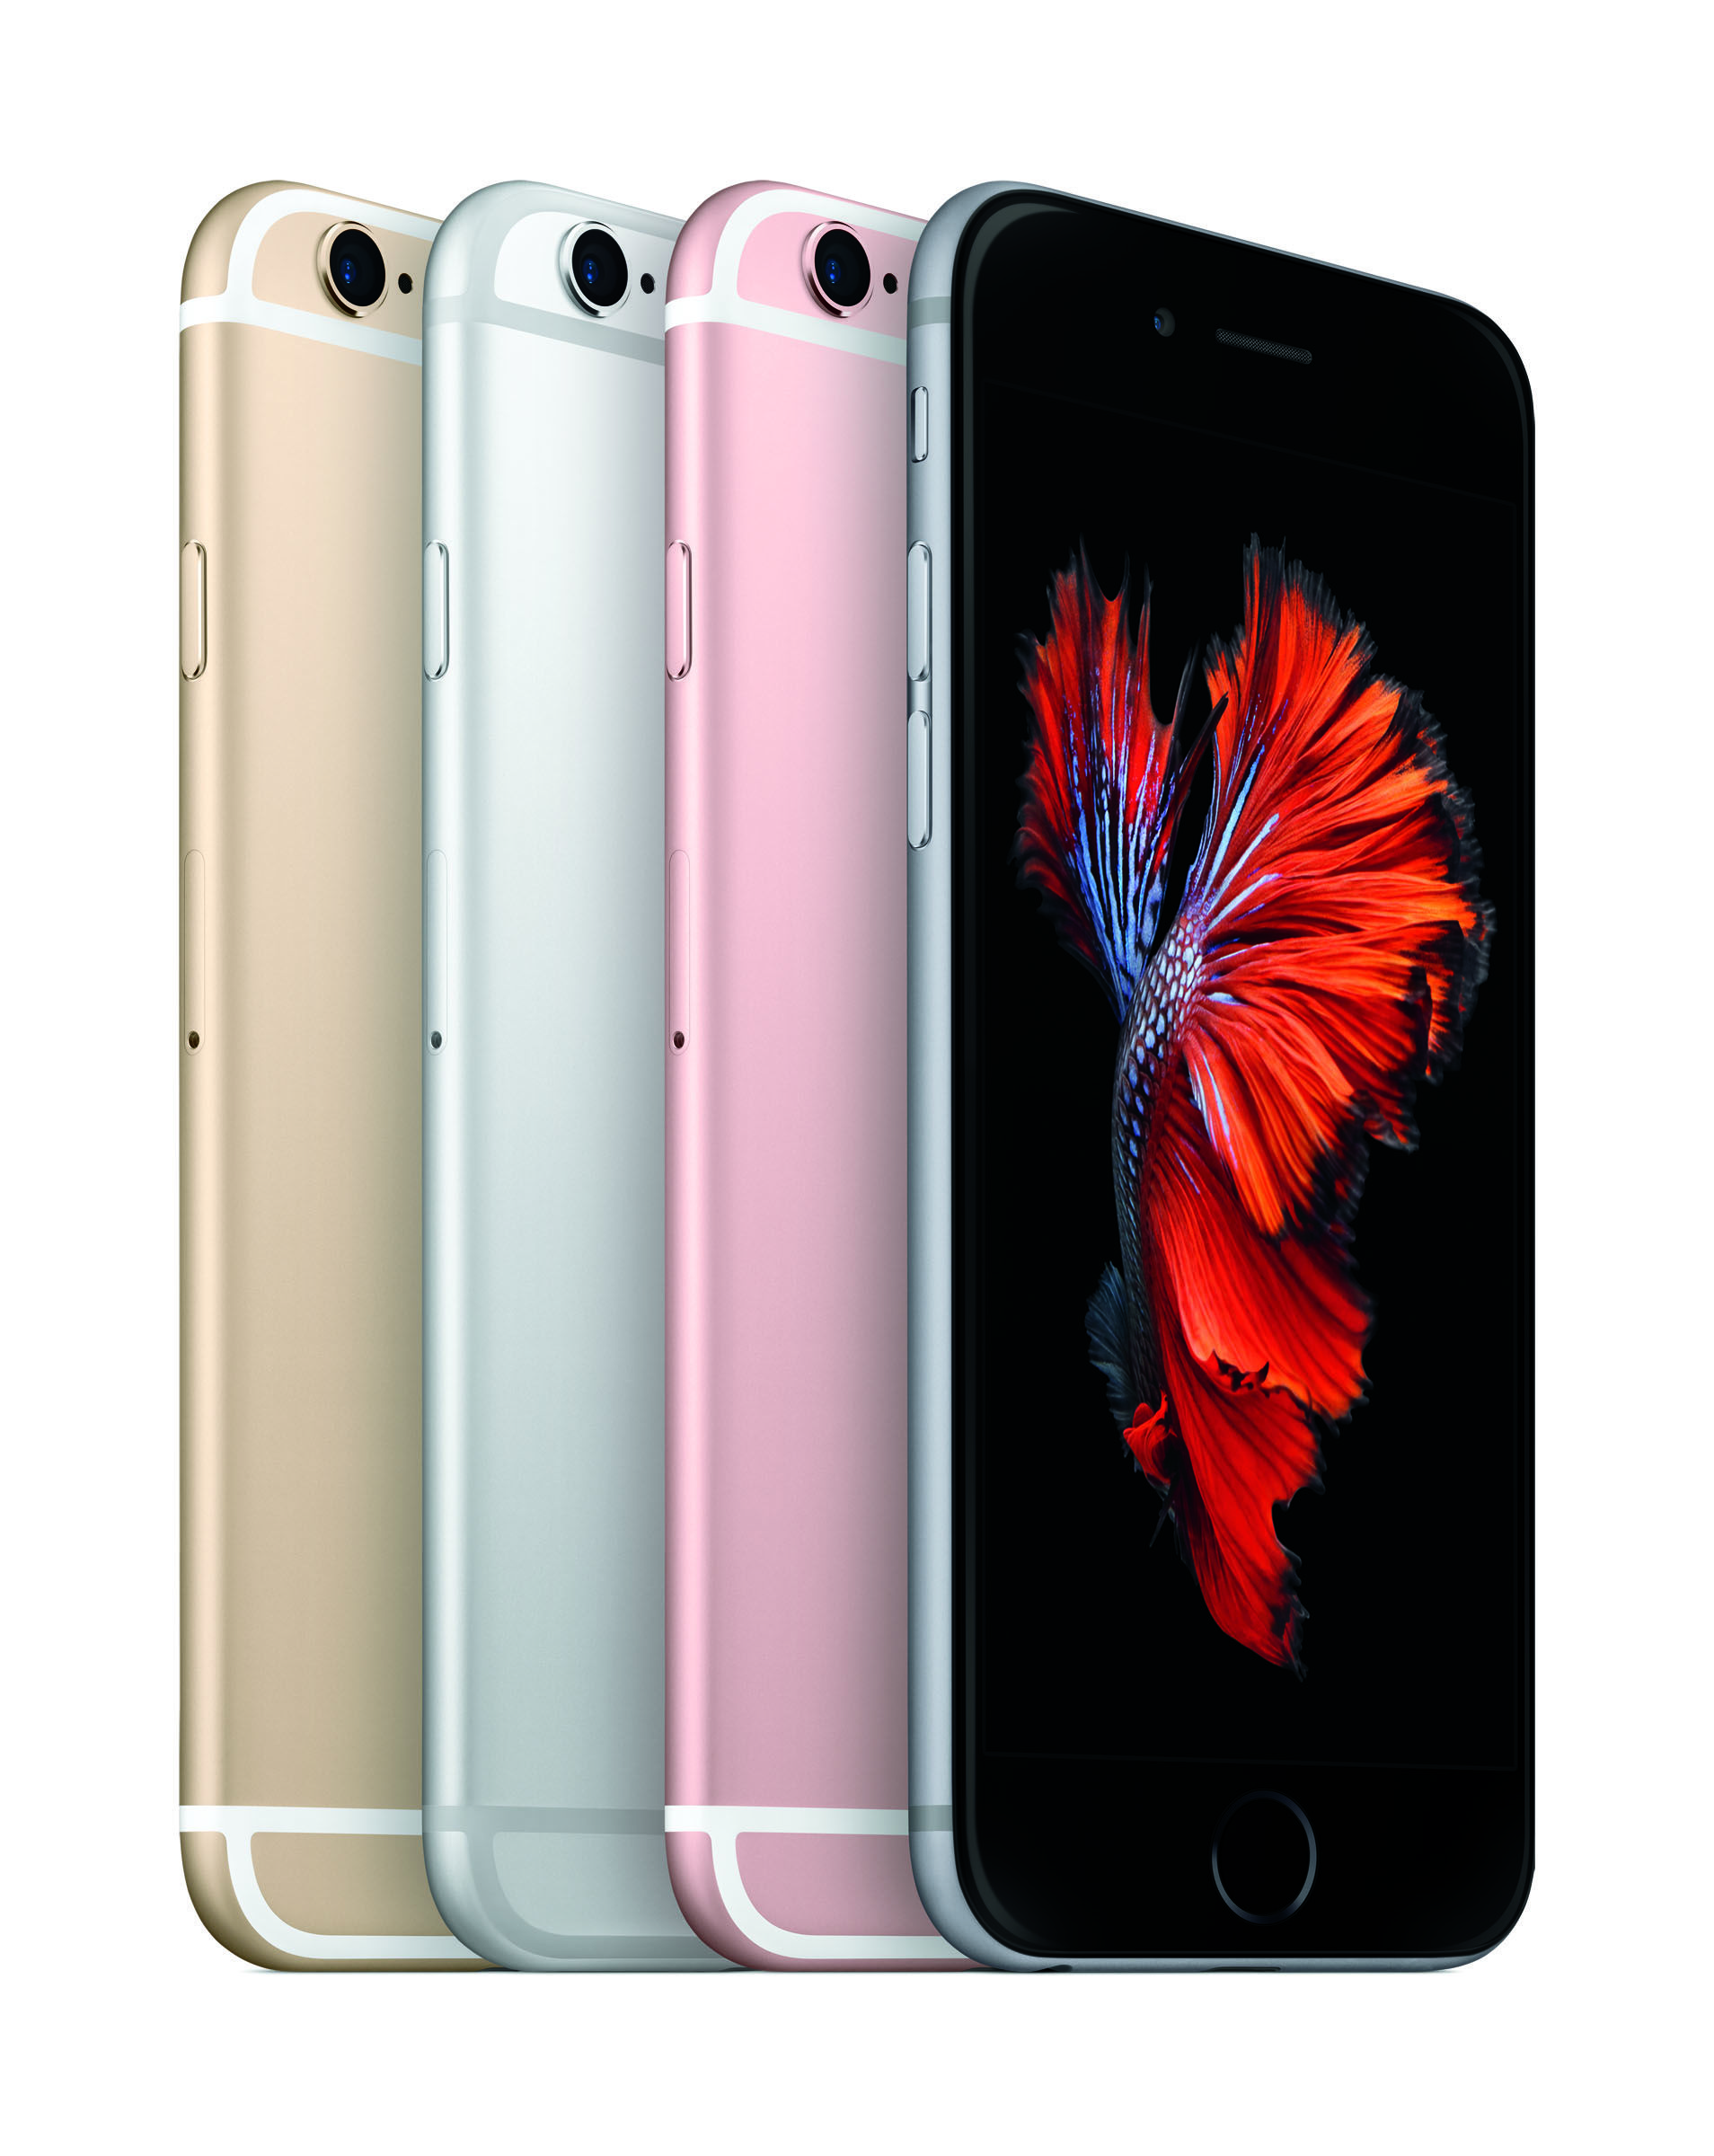 Pin By Ck On Apple Iphone Apple Iphone 6s Plus Boost Mobile